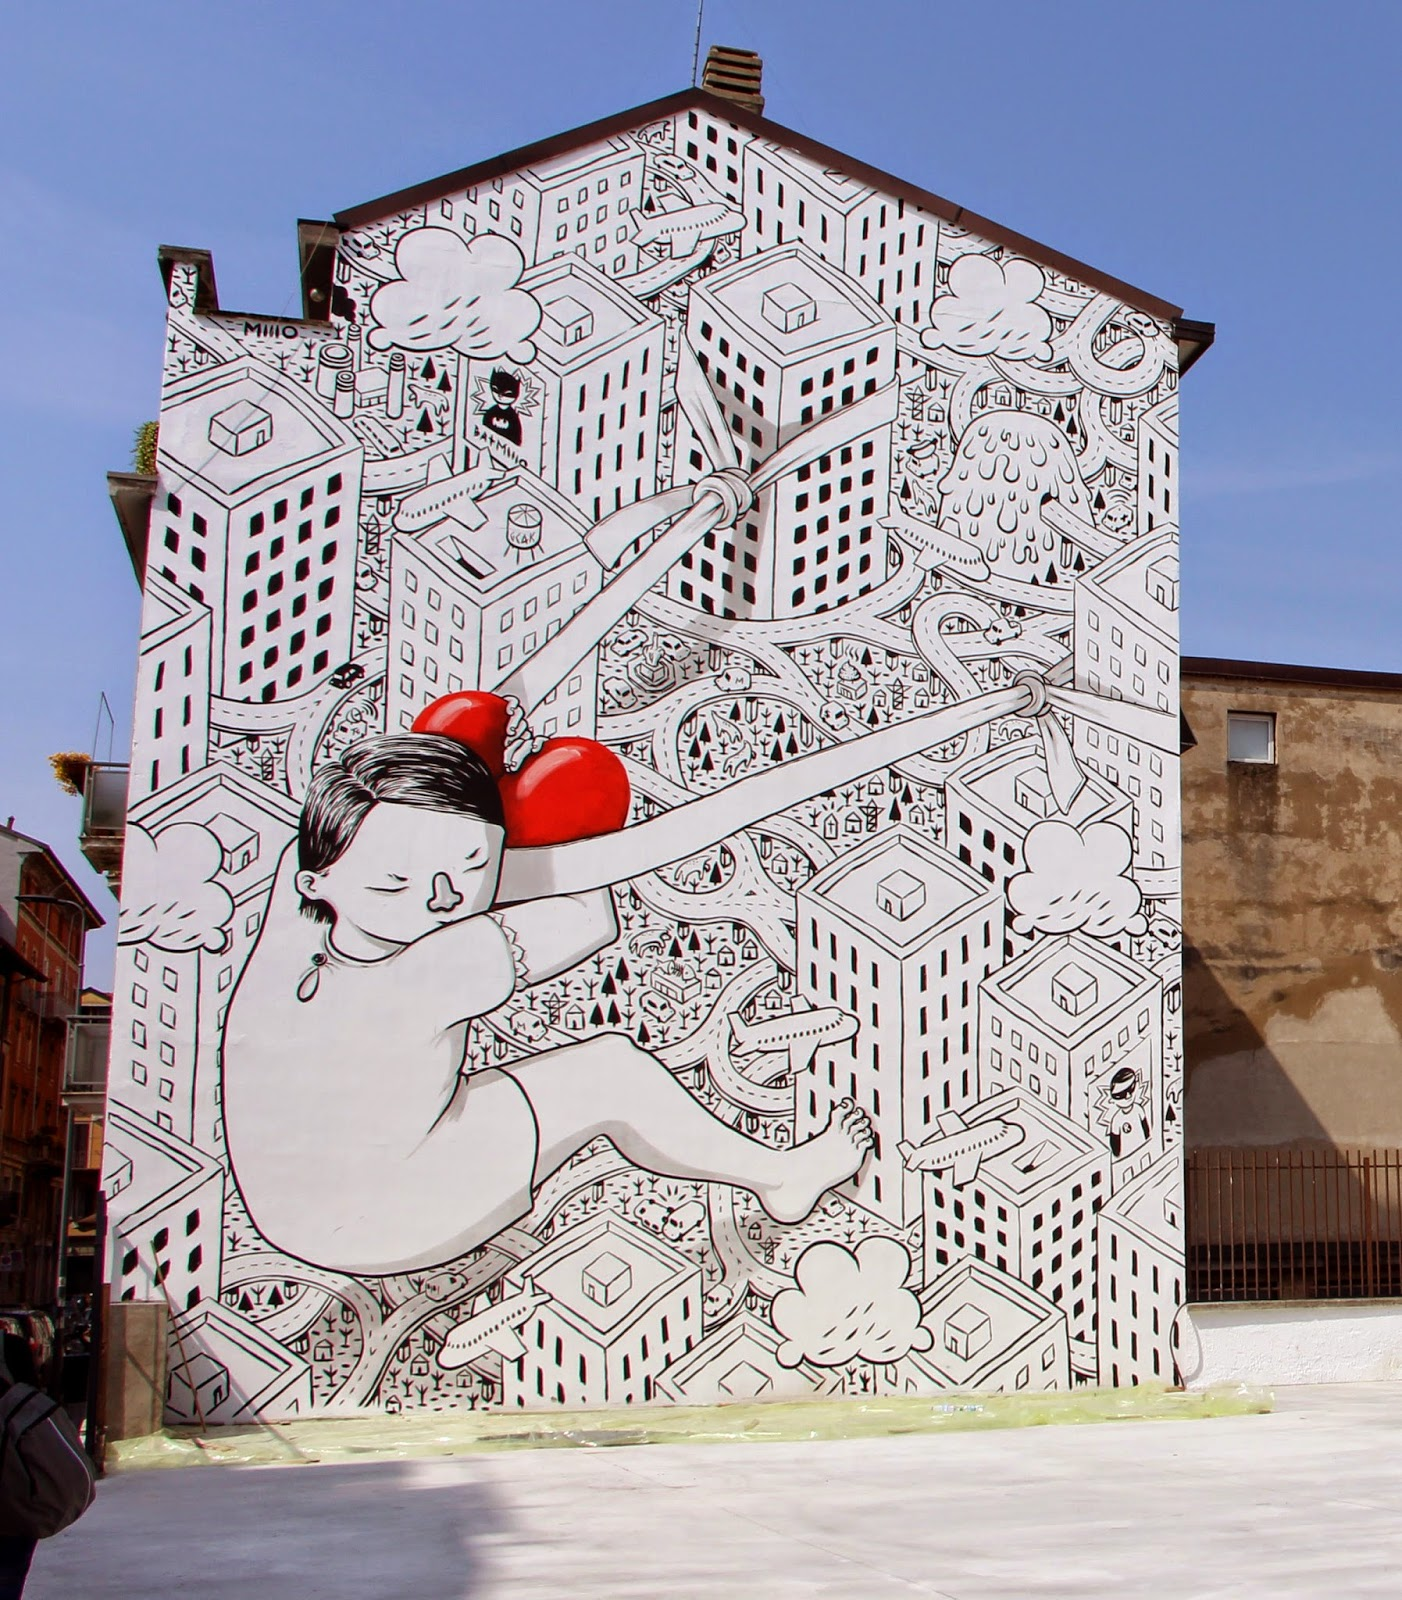 While you discovered the first piece a few days ago, Millo has now wrapped up the second part of his massive project in Milan, Italy.